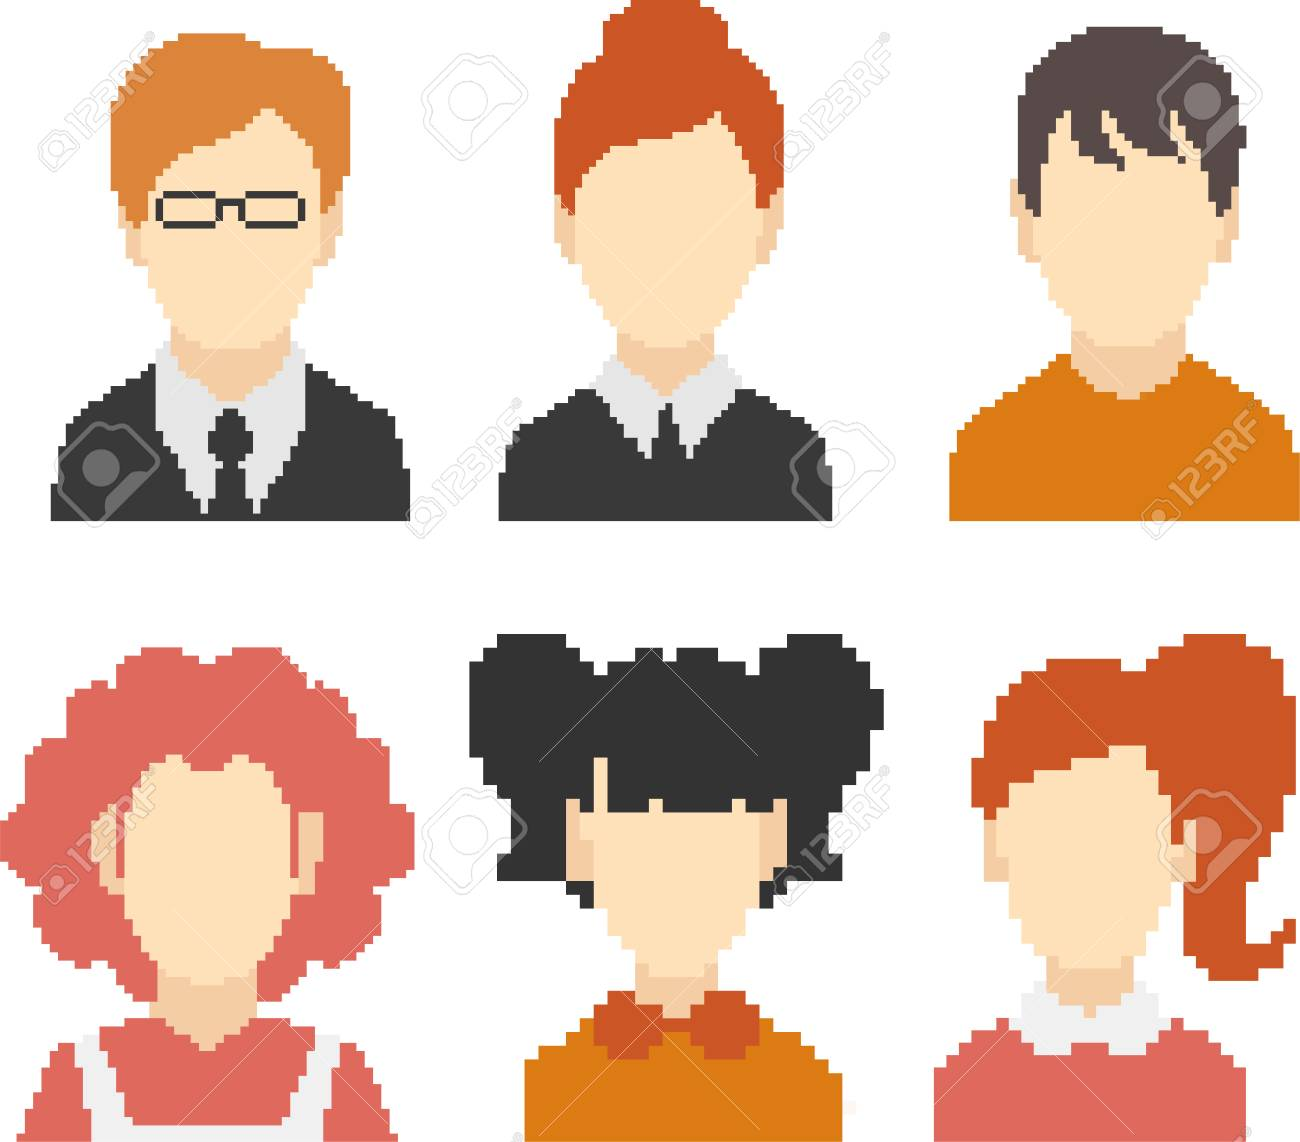 Set of faces in pixel-art style  Retro 8-bit or 16-bit  For your